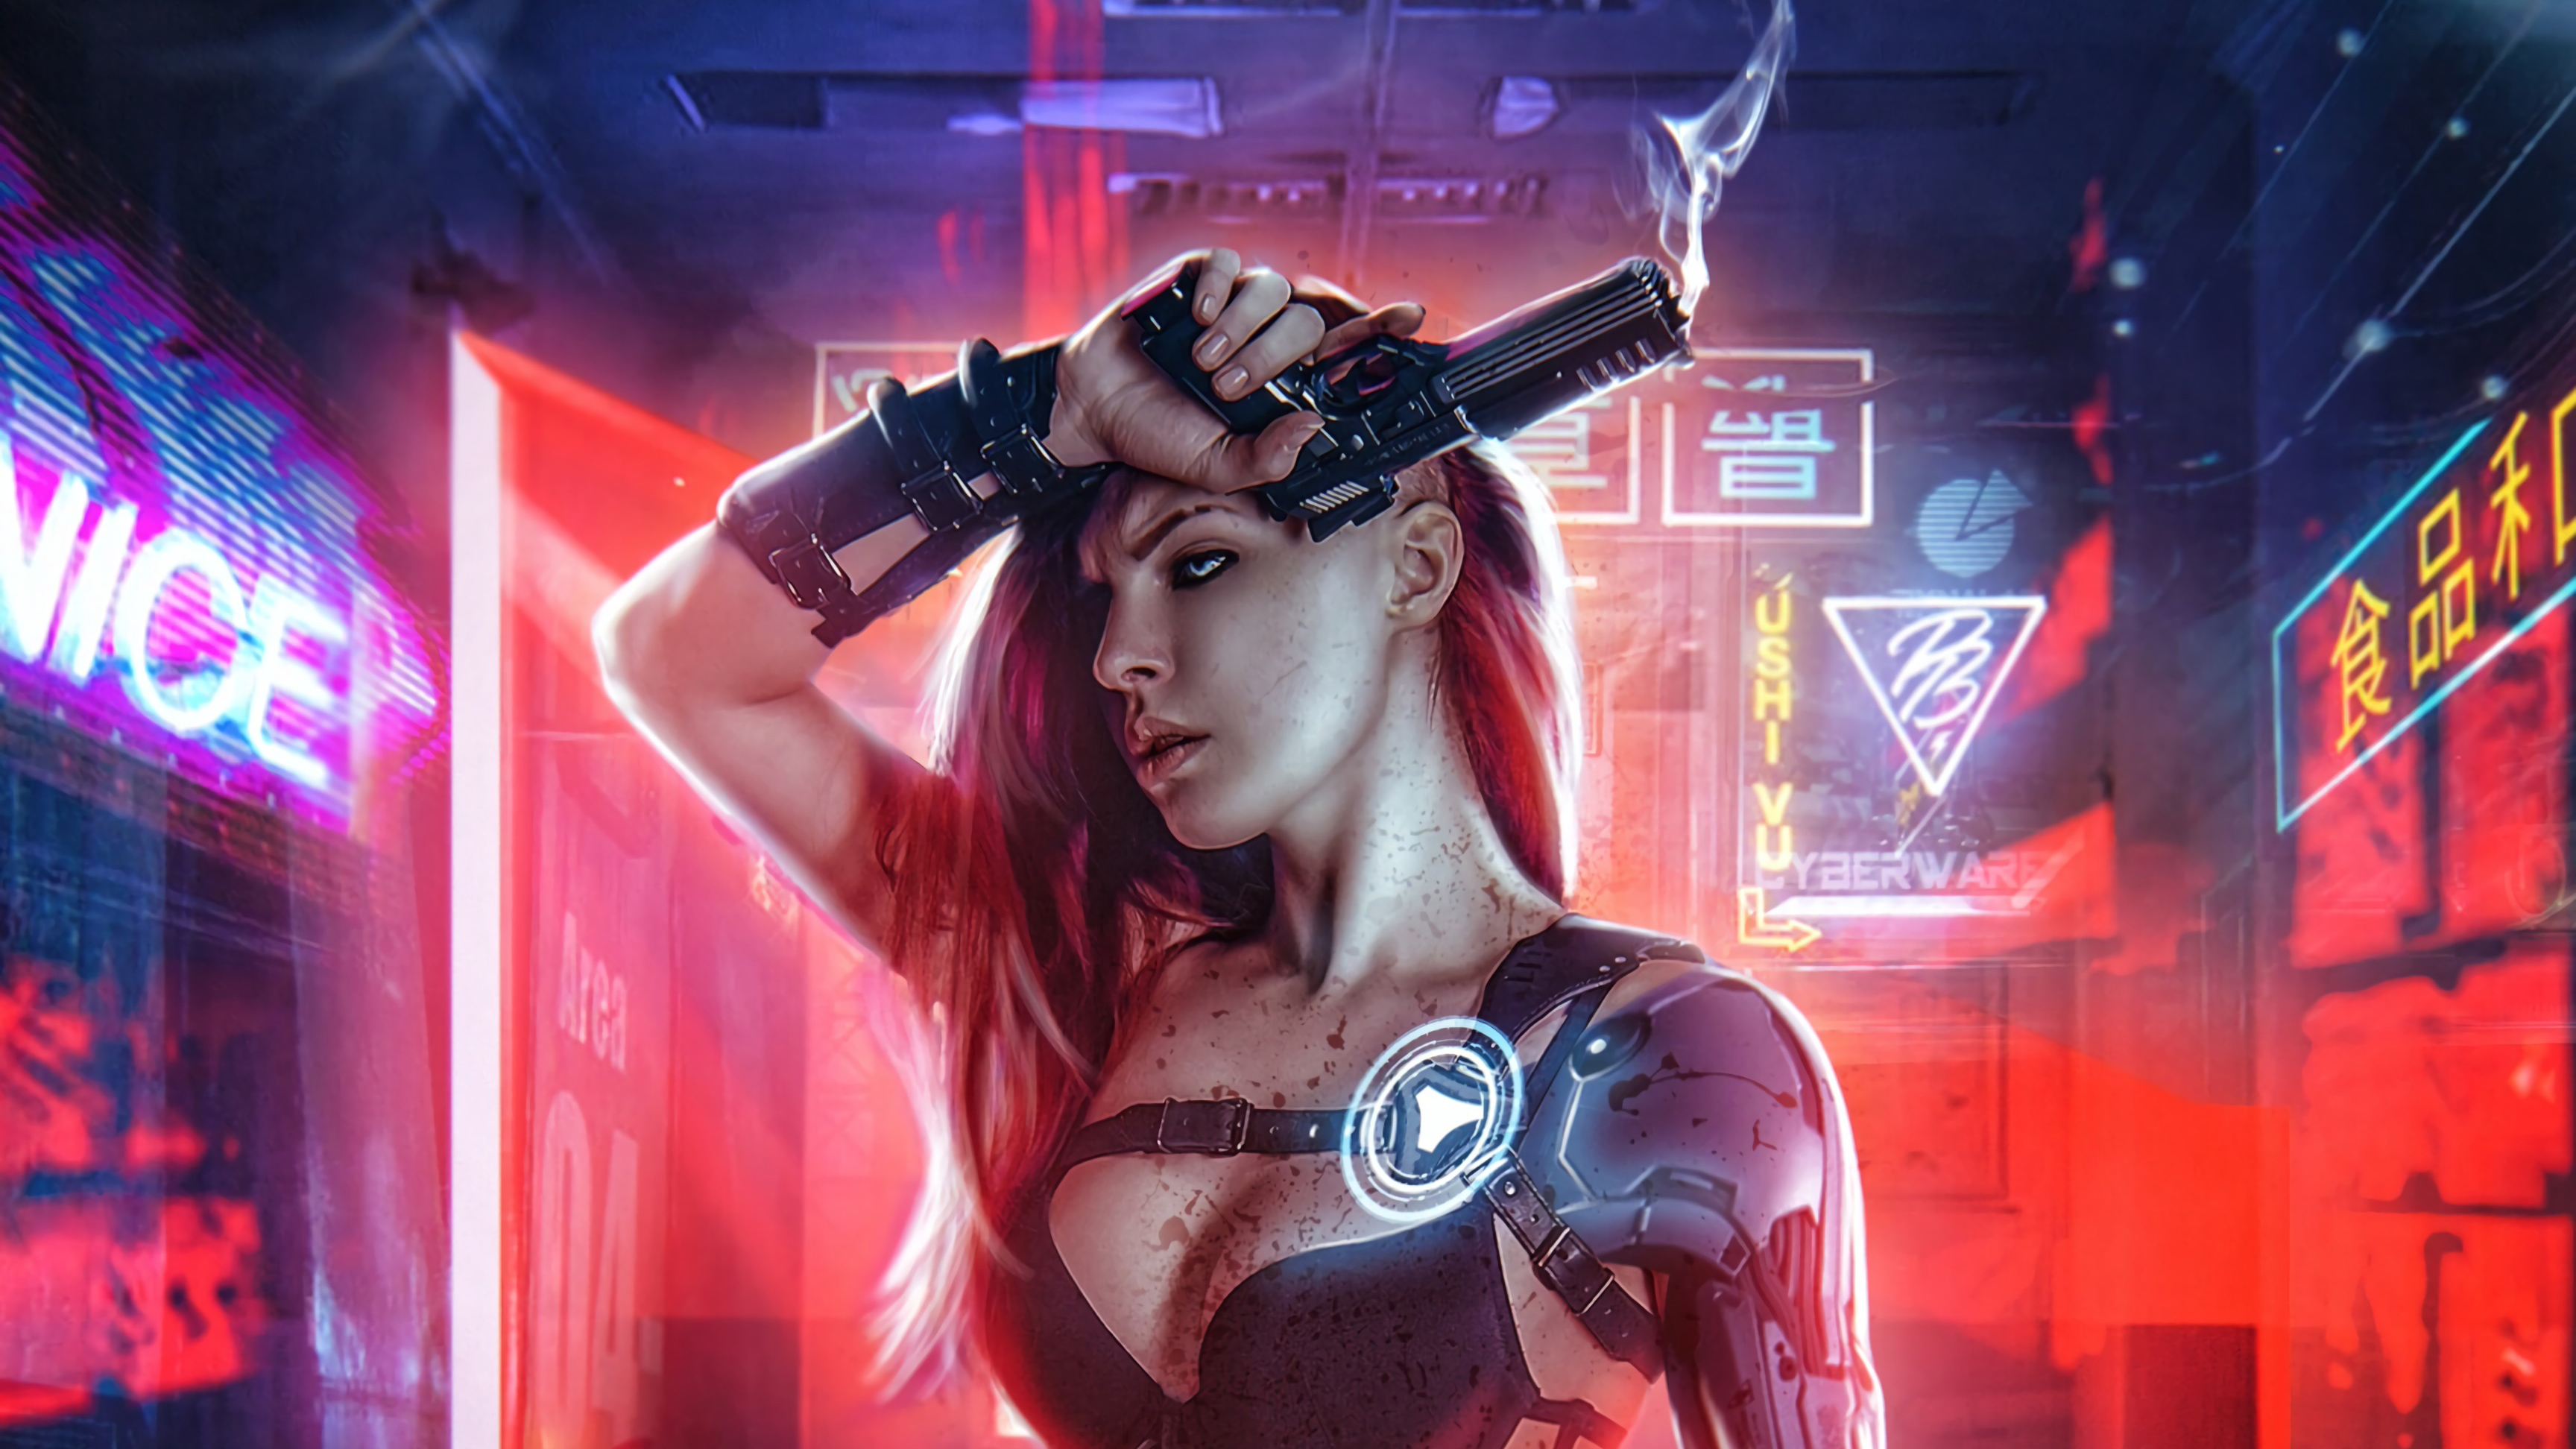 Cyberpunk Girl With Gun 4k Hd Artist 4k Wallpapers Images Backgrounds Photos And Pictures